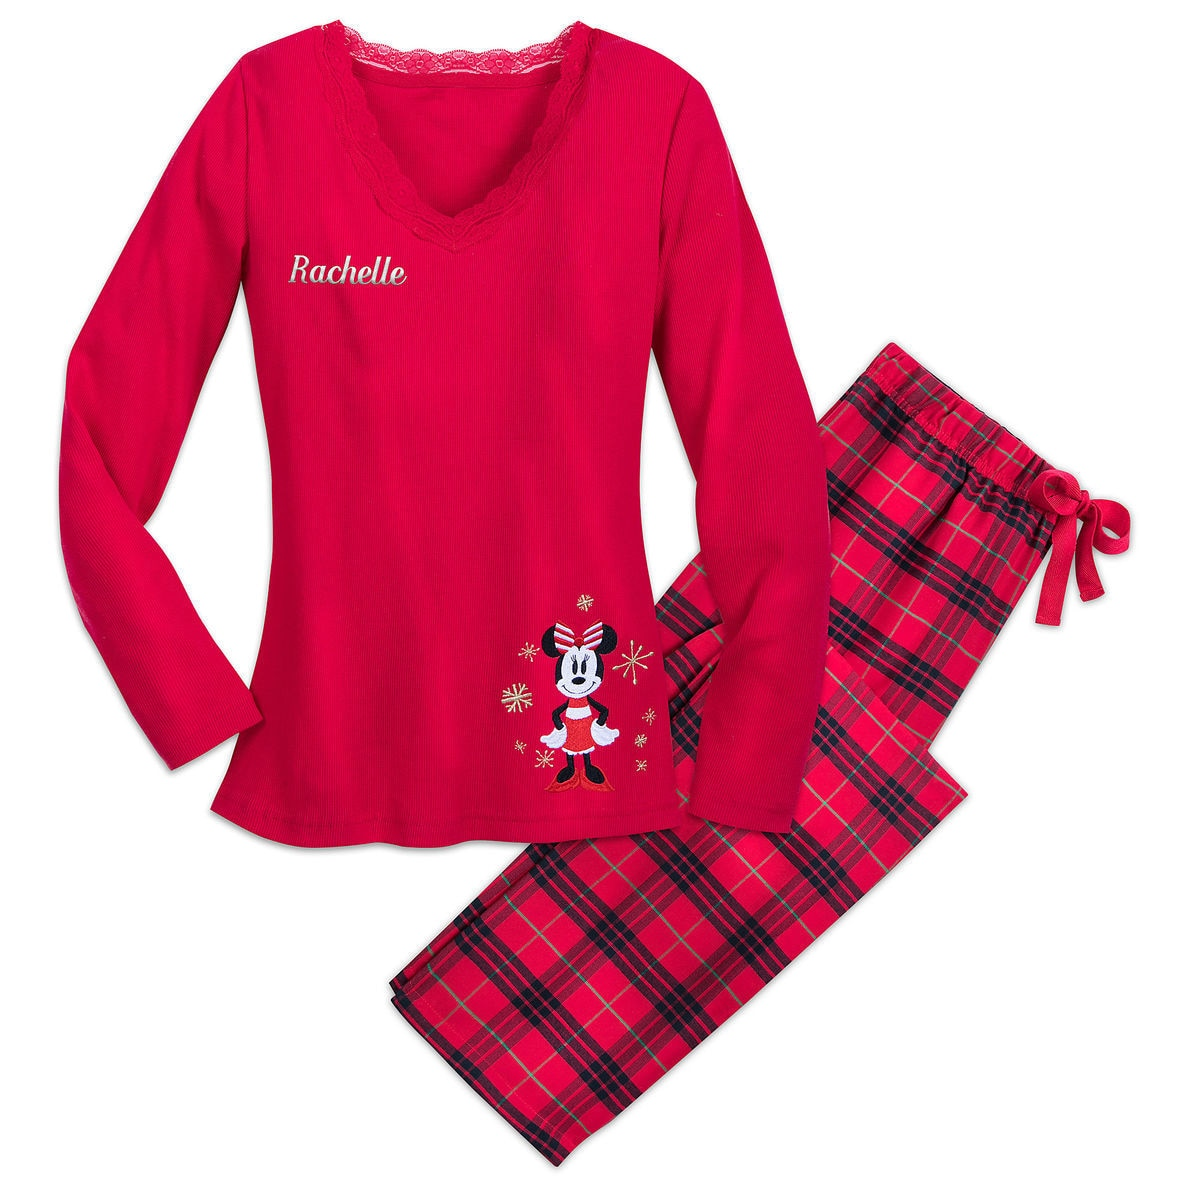 bee50394e Minnie Mouse Holiday Plaid PJ Set for Women - Personalizable ...